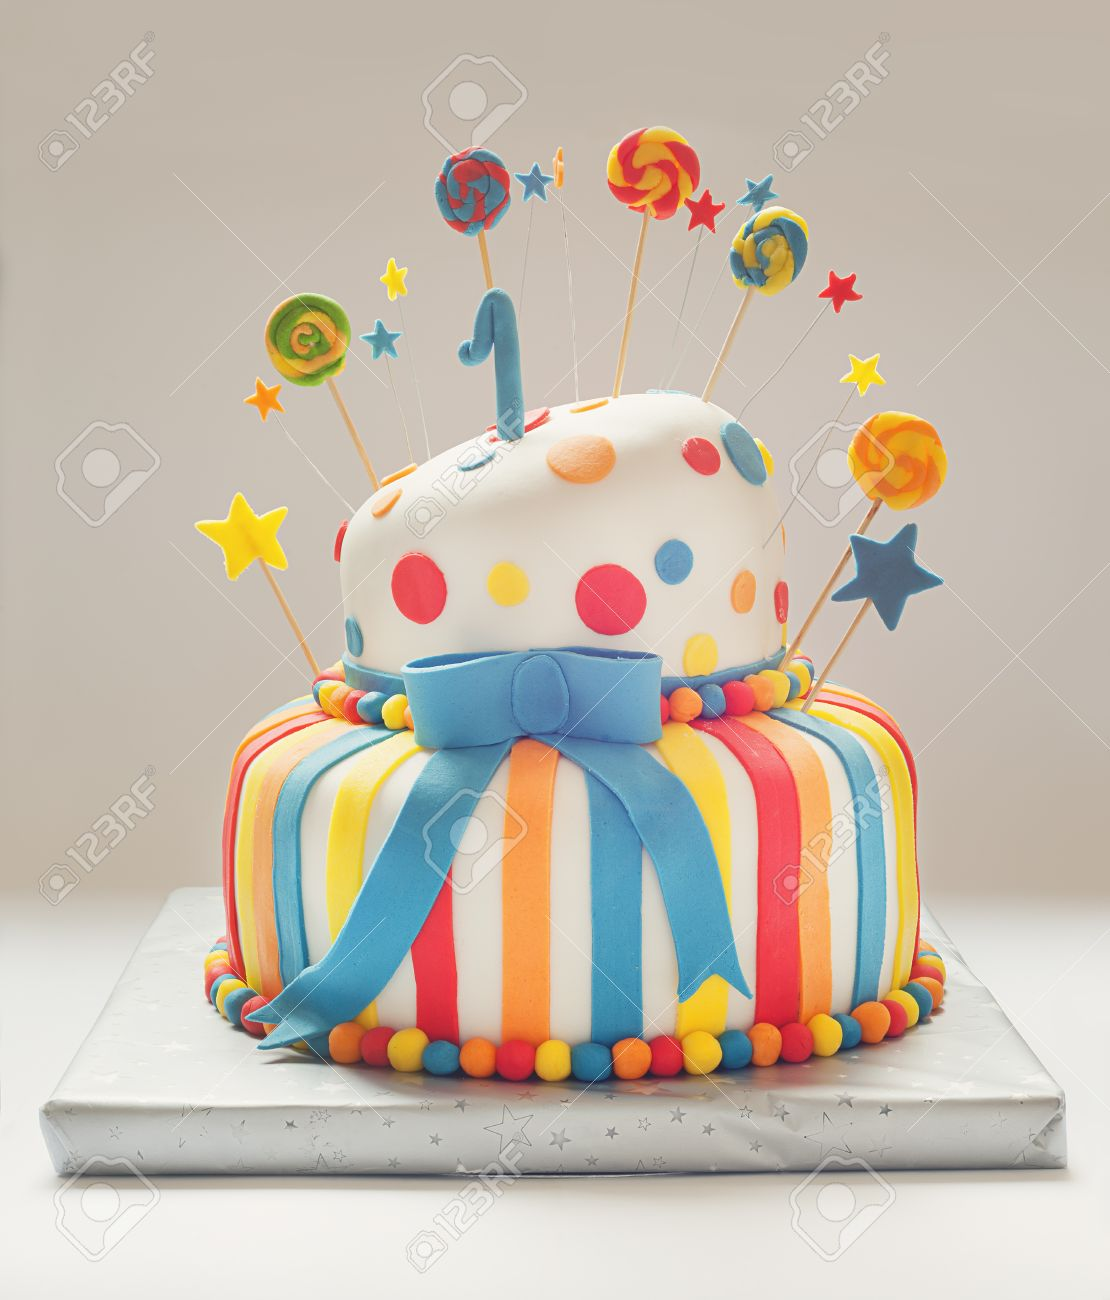 Funny Birthday Cake With Number One On Top Sweet Colorful Decoration Stock Photo